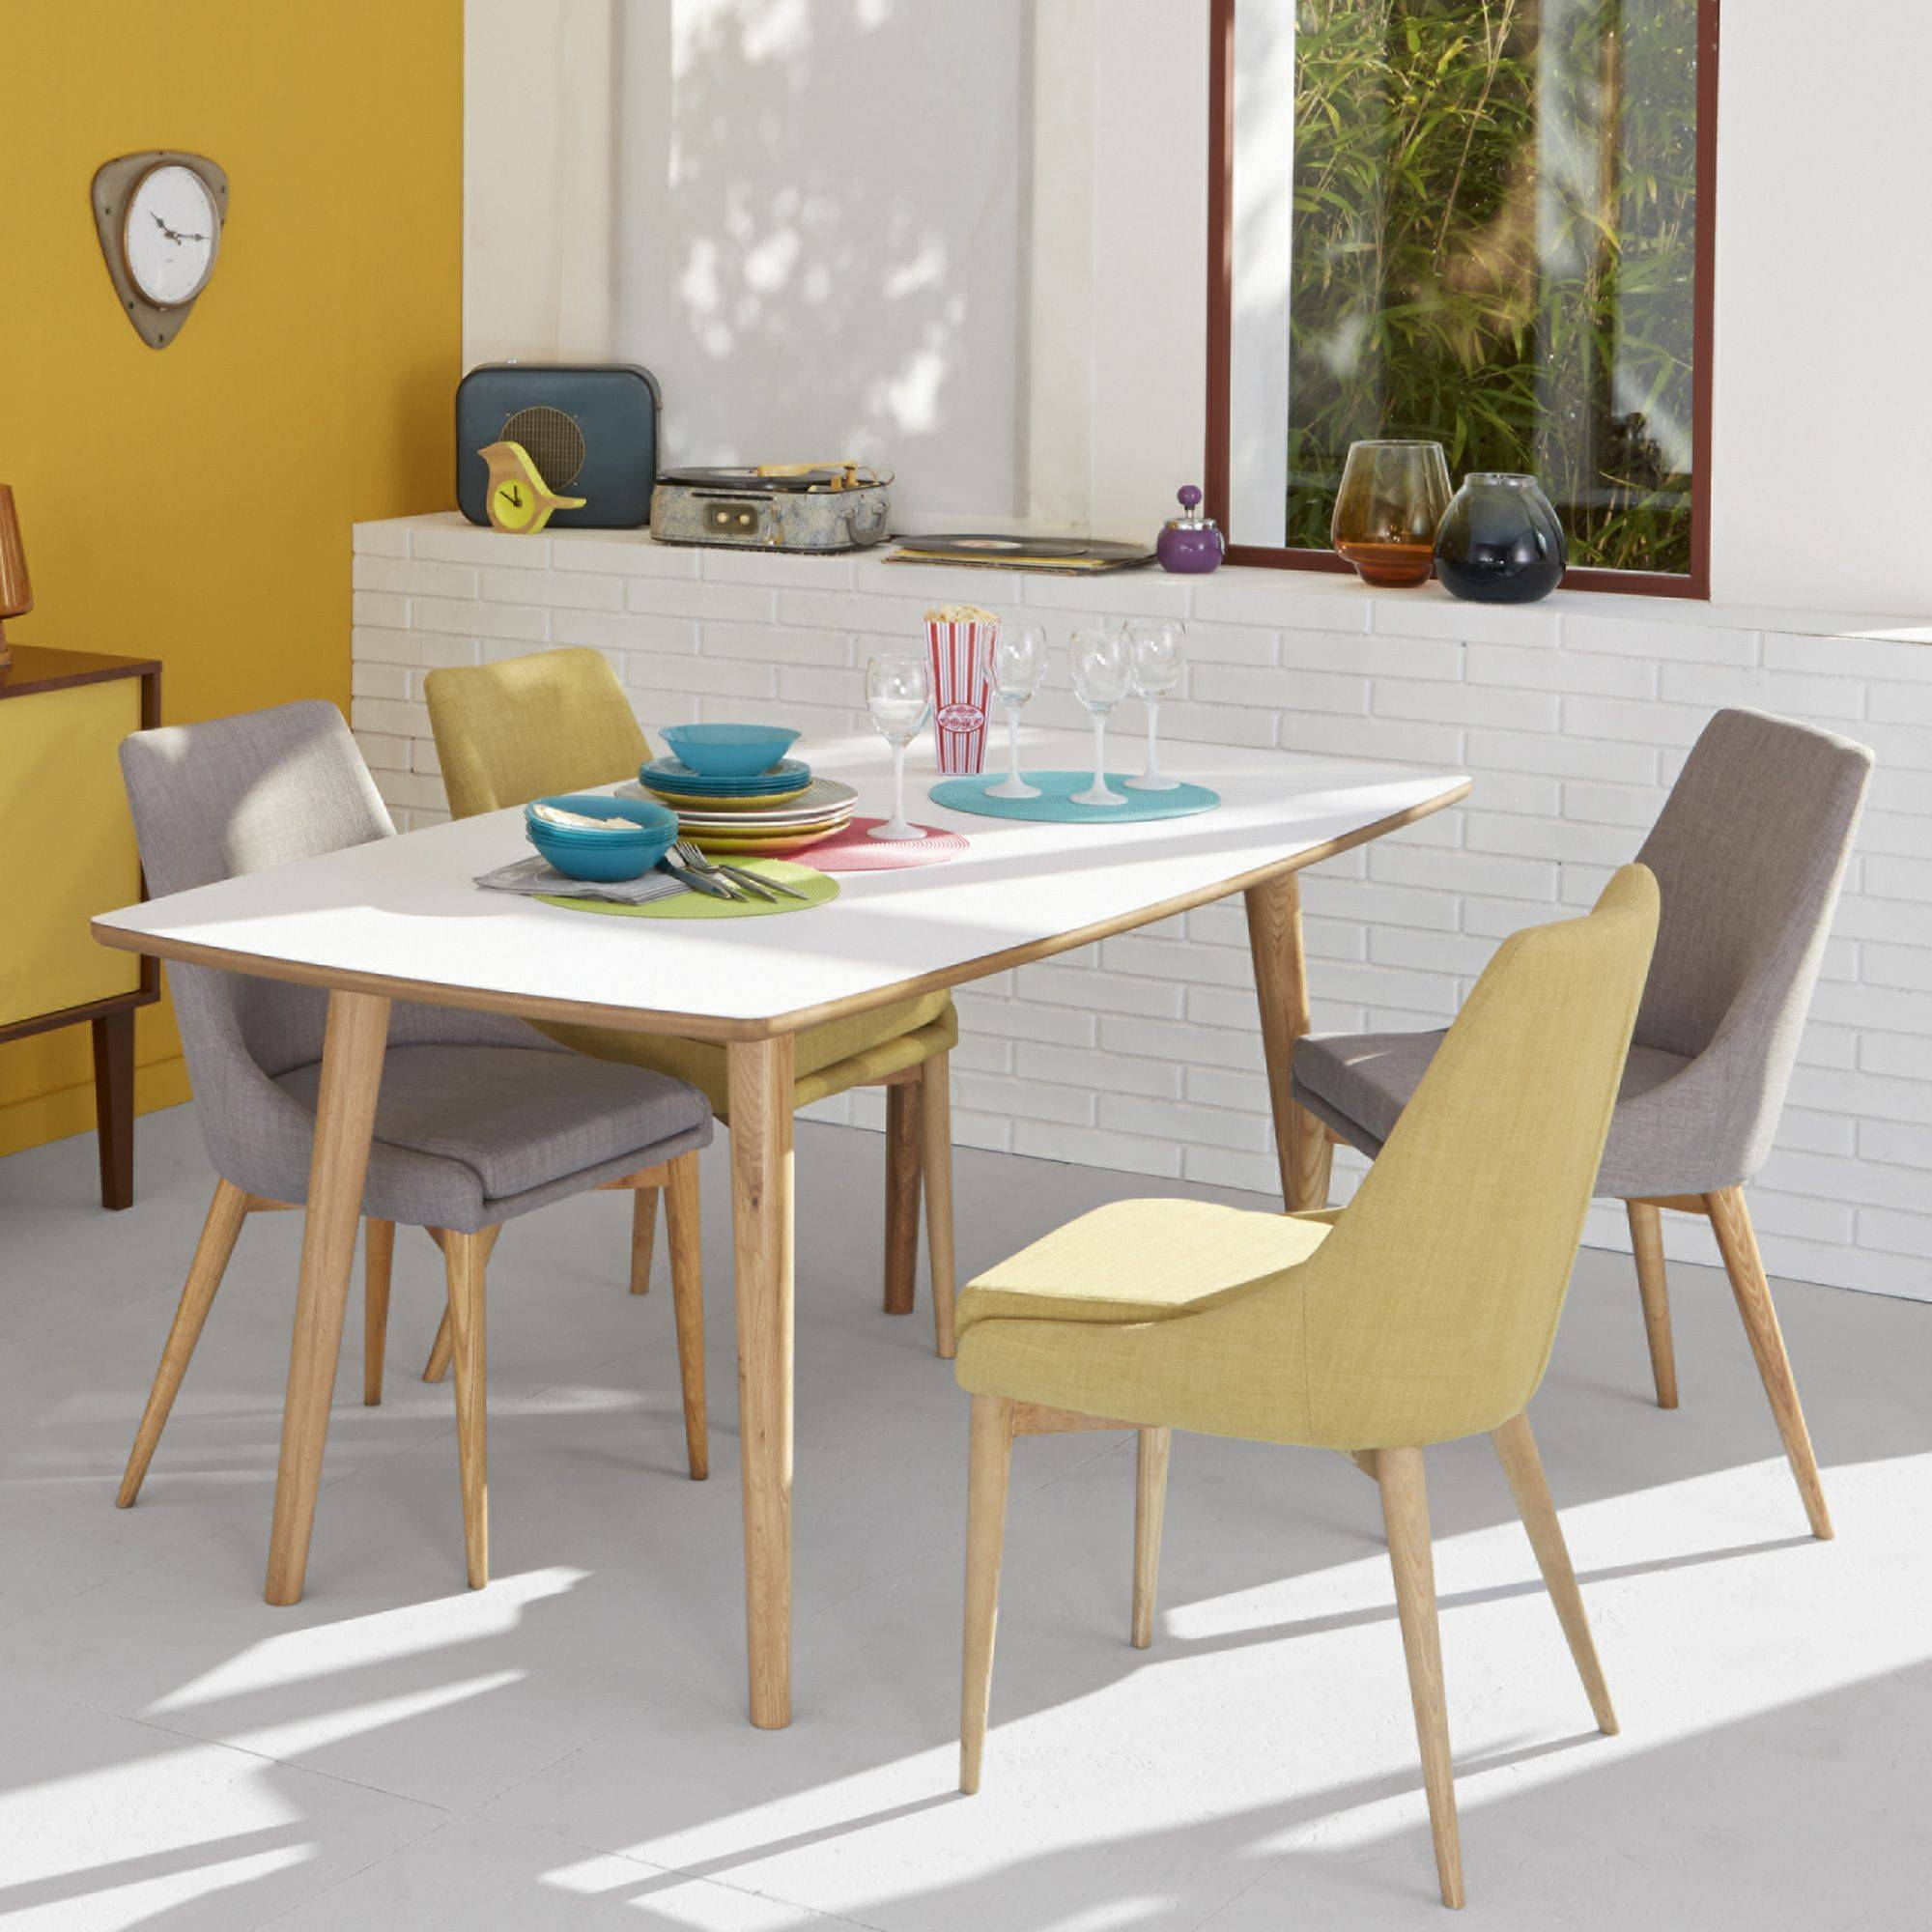 Chaise Contemporaine Salle A Manger Idees De Decoration Interieure